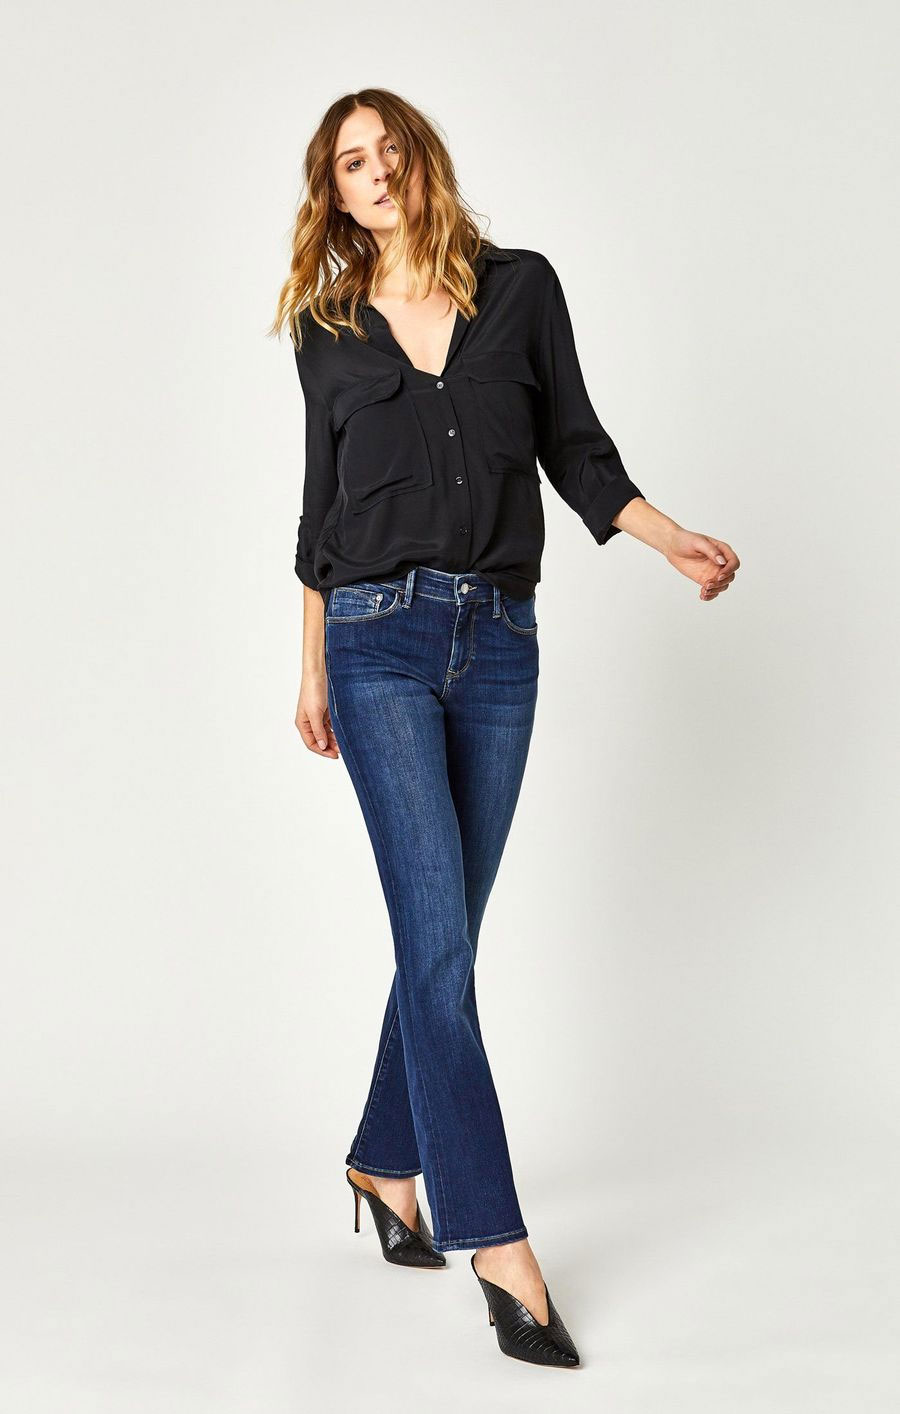 New Stylish and Soft Fall Denim Arrivals from Mavi - Molly Boot in Indigo Supersoft